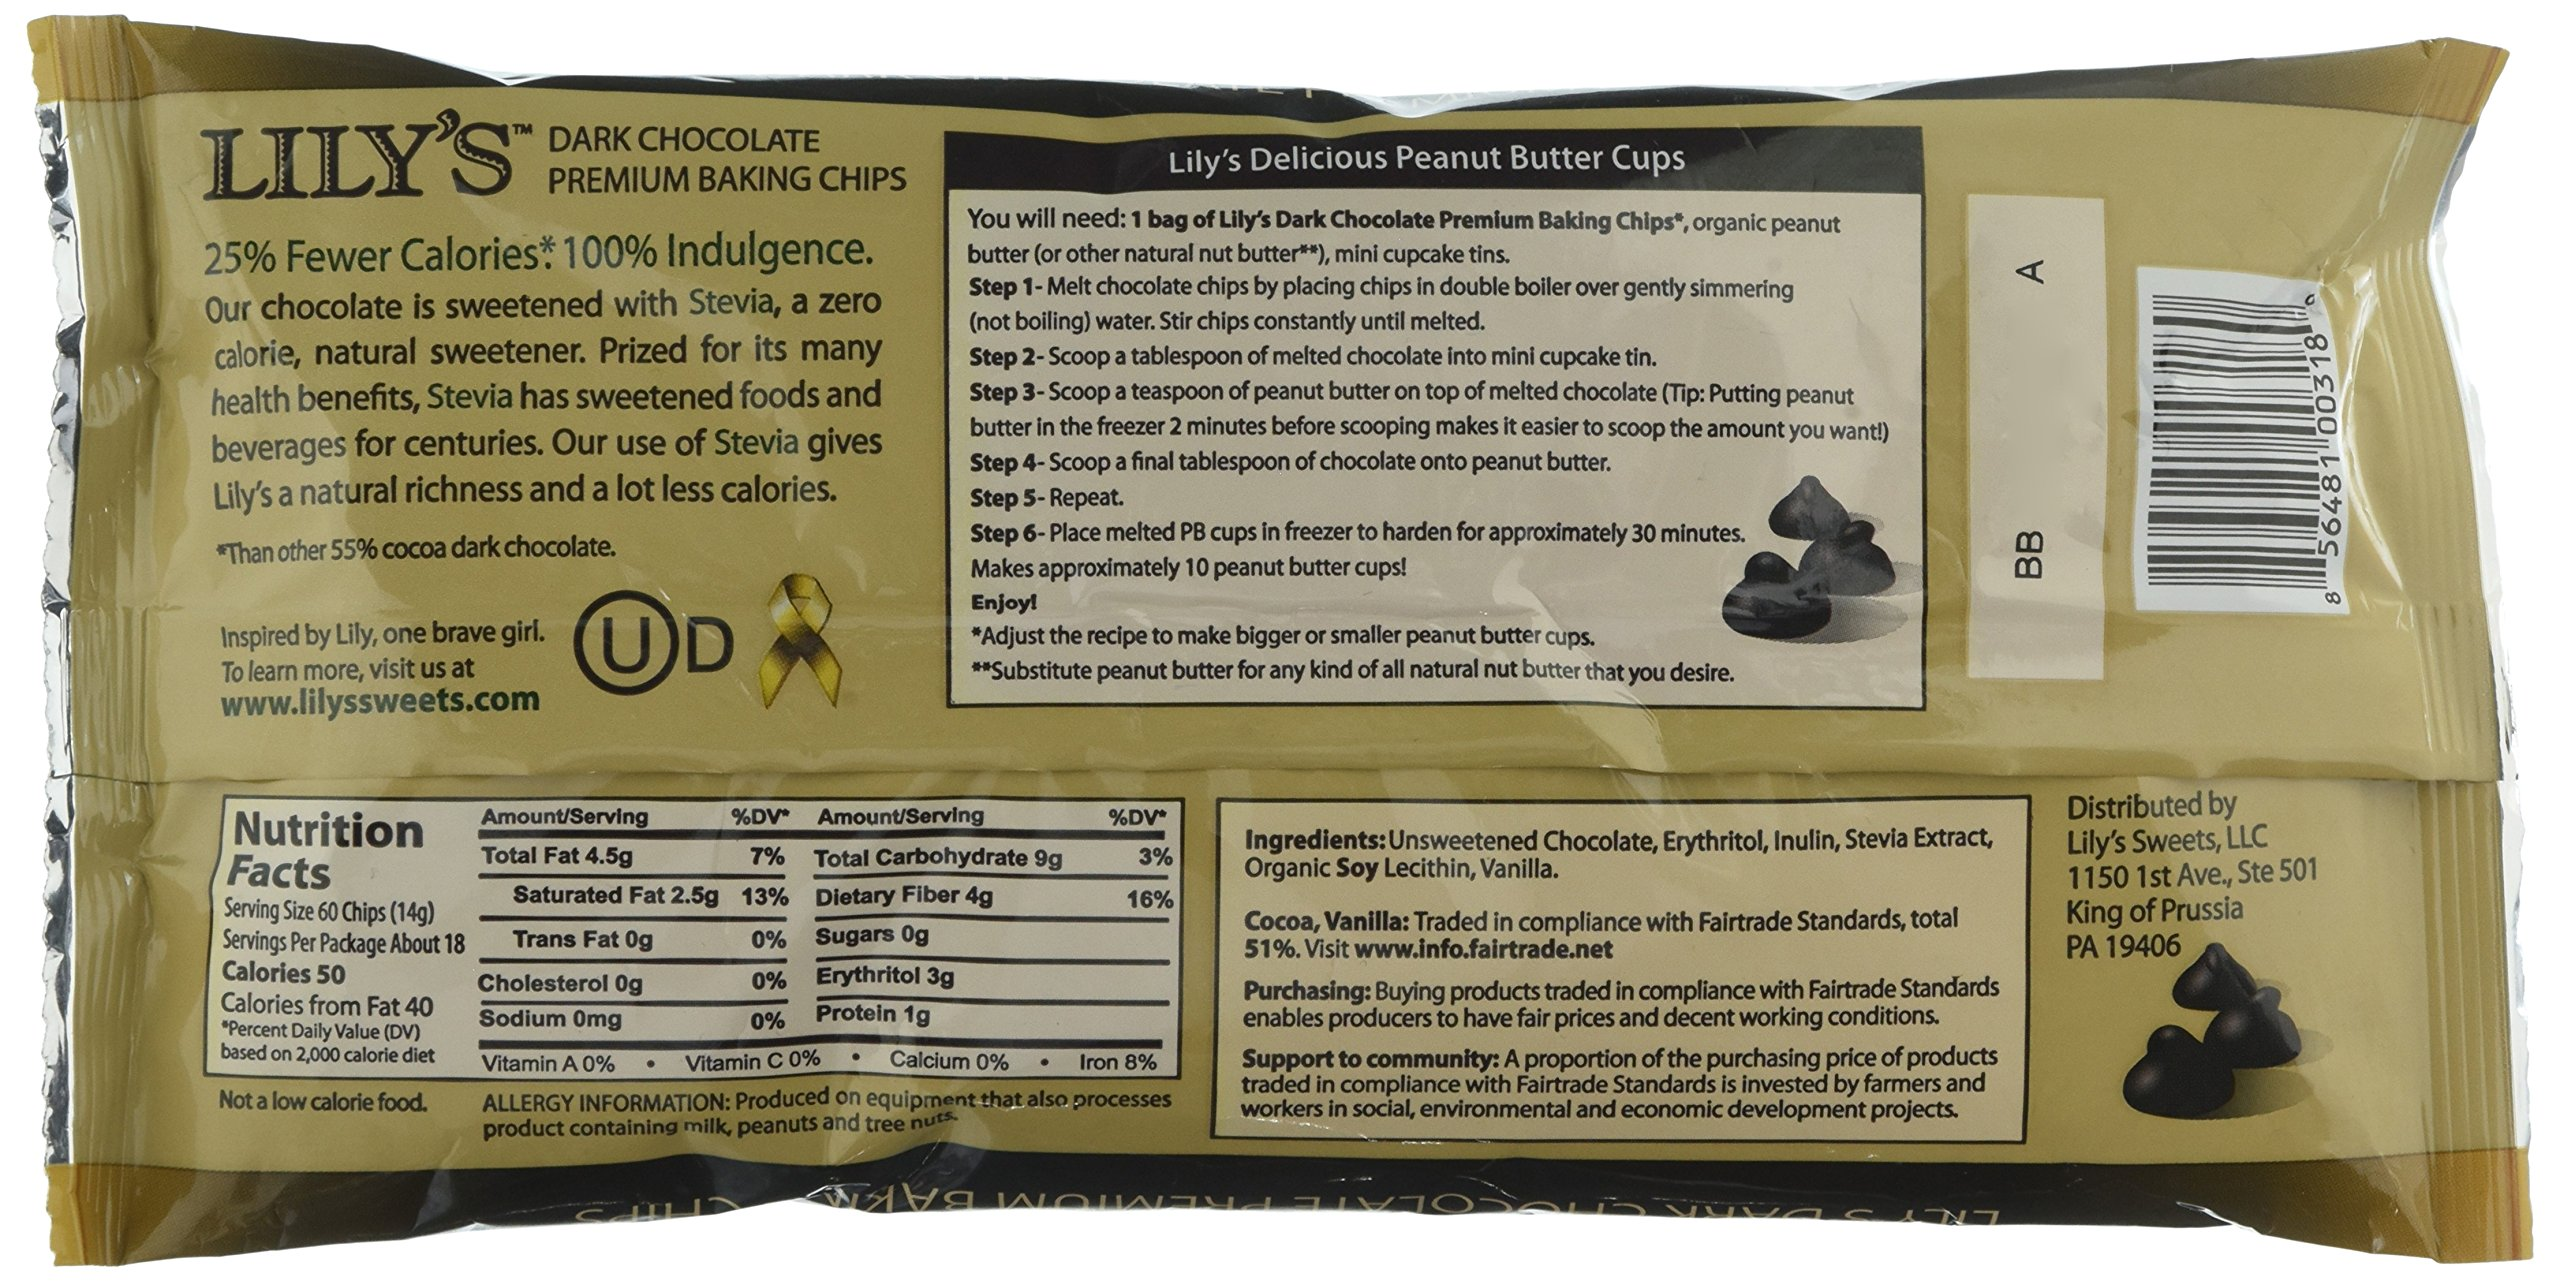 Lily's Chocolate All Natural Premium Baking Chips, Dark Chocolate, 4 Count by Lily's Chocolate (Image #5)